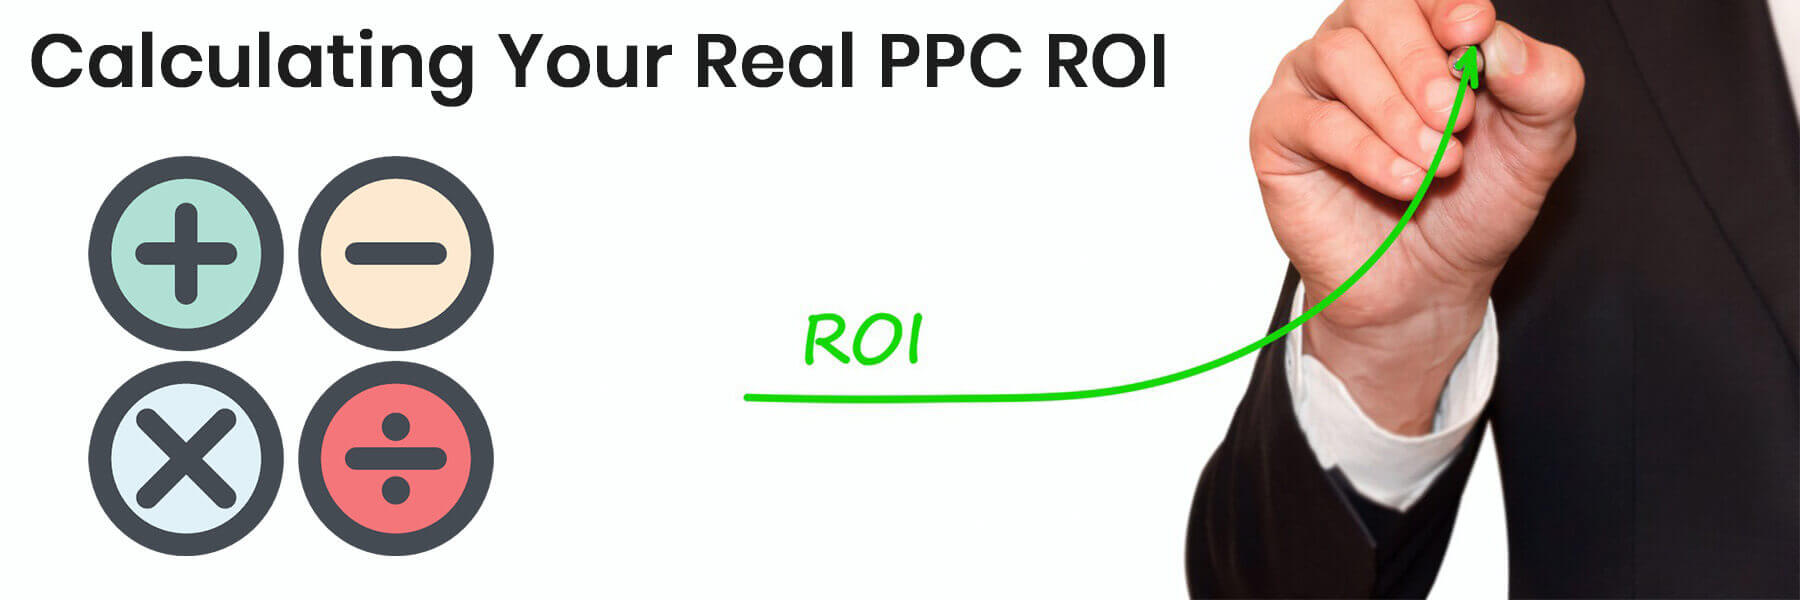 Calculate Your Real PPC ROI